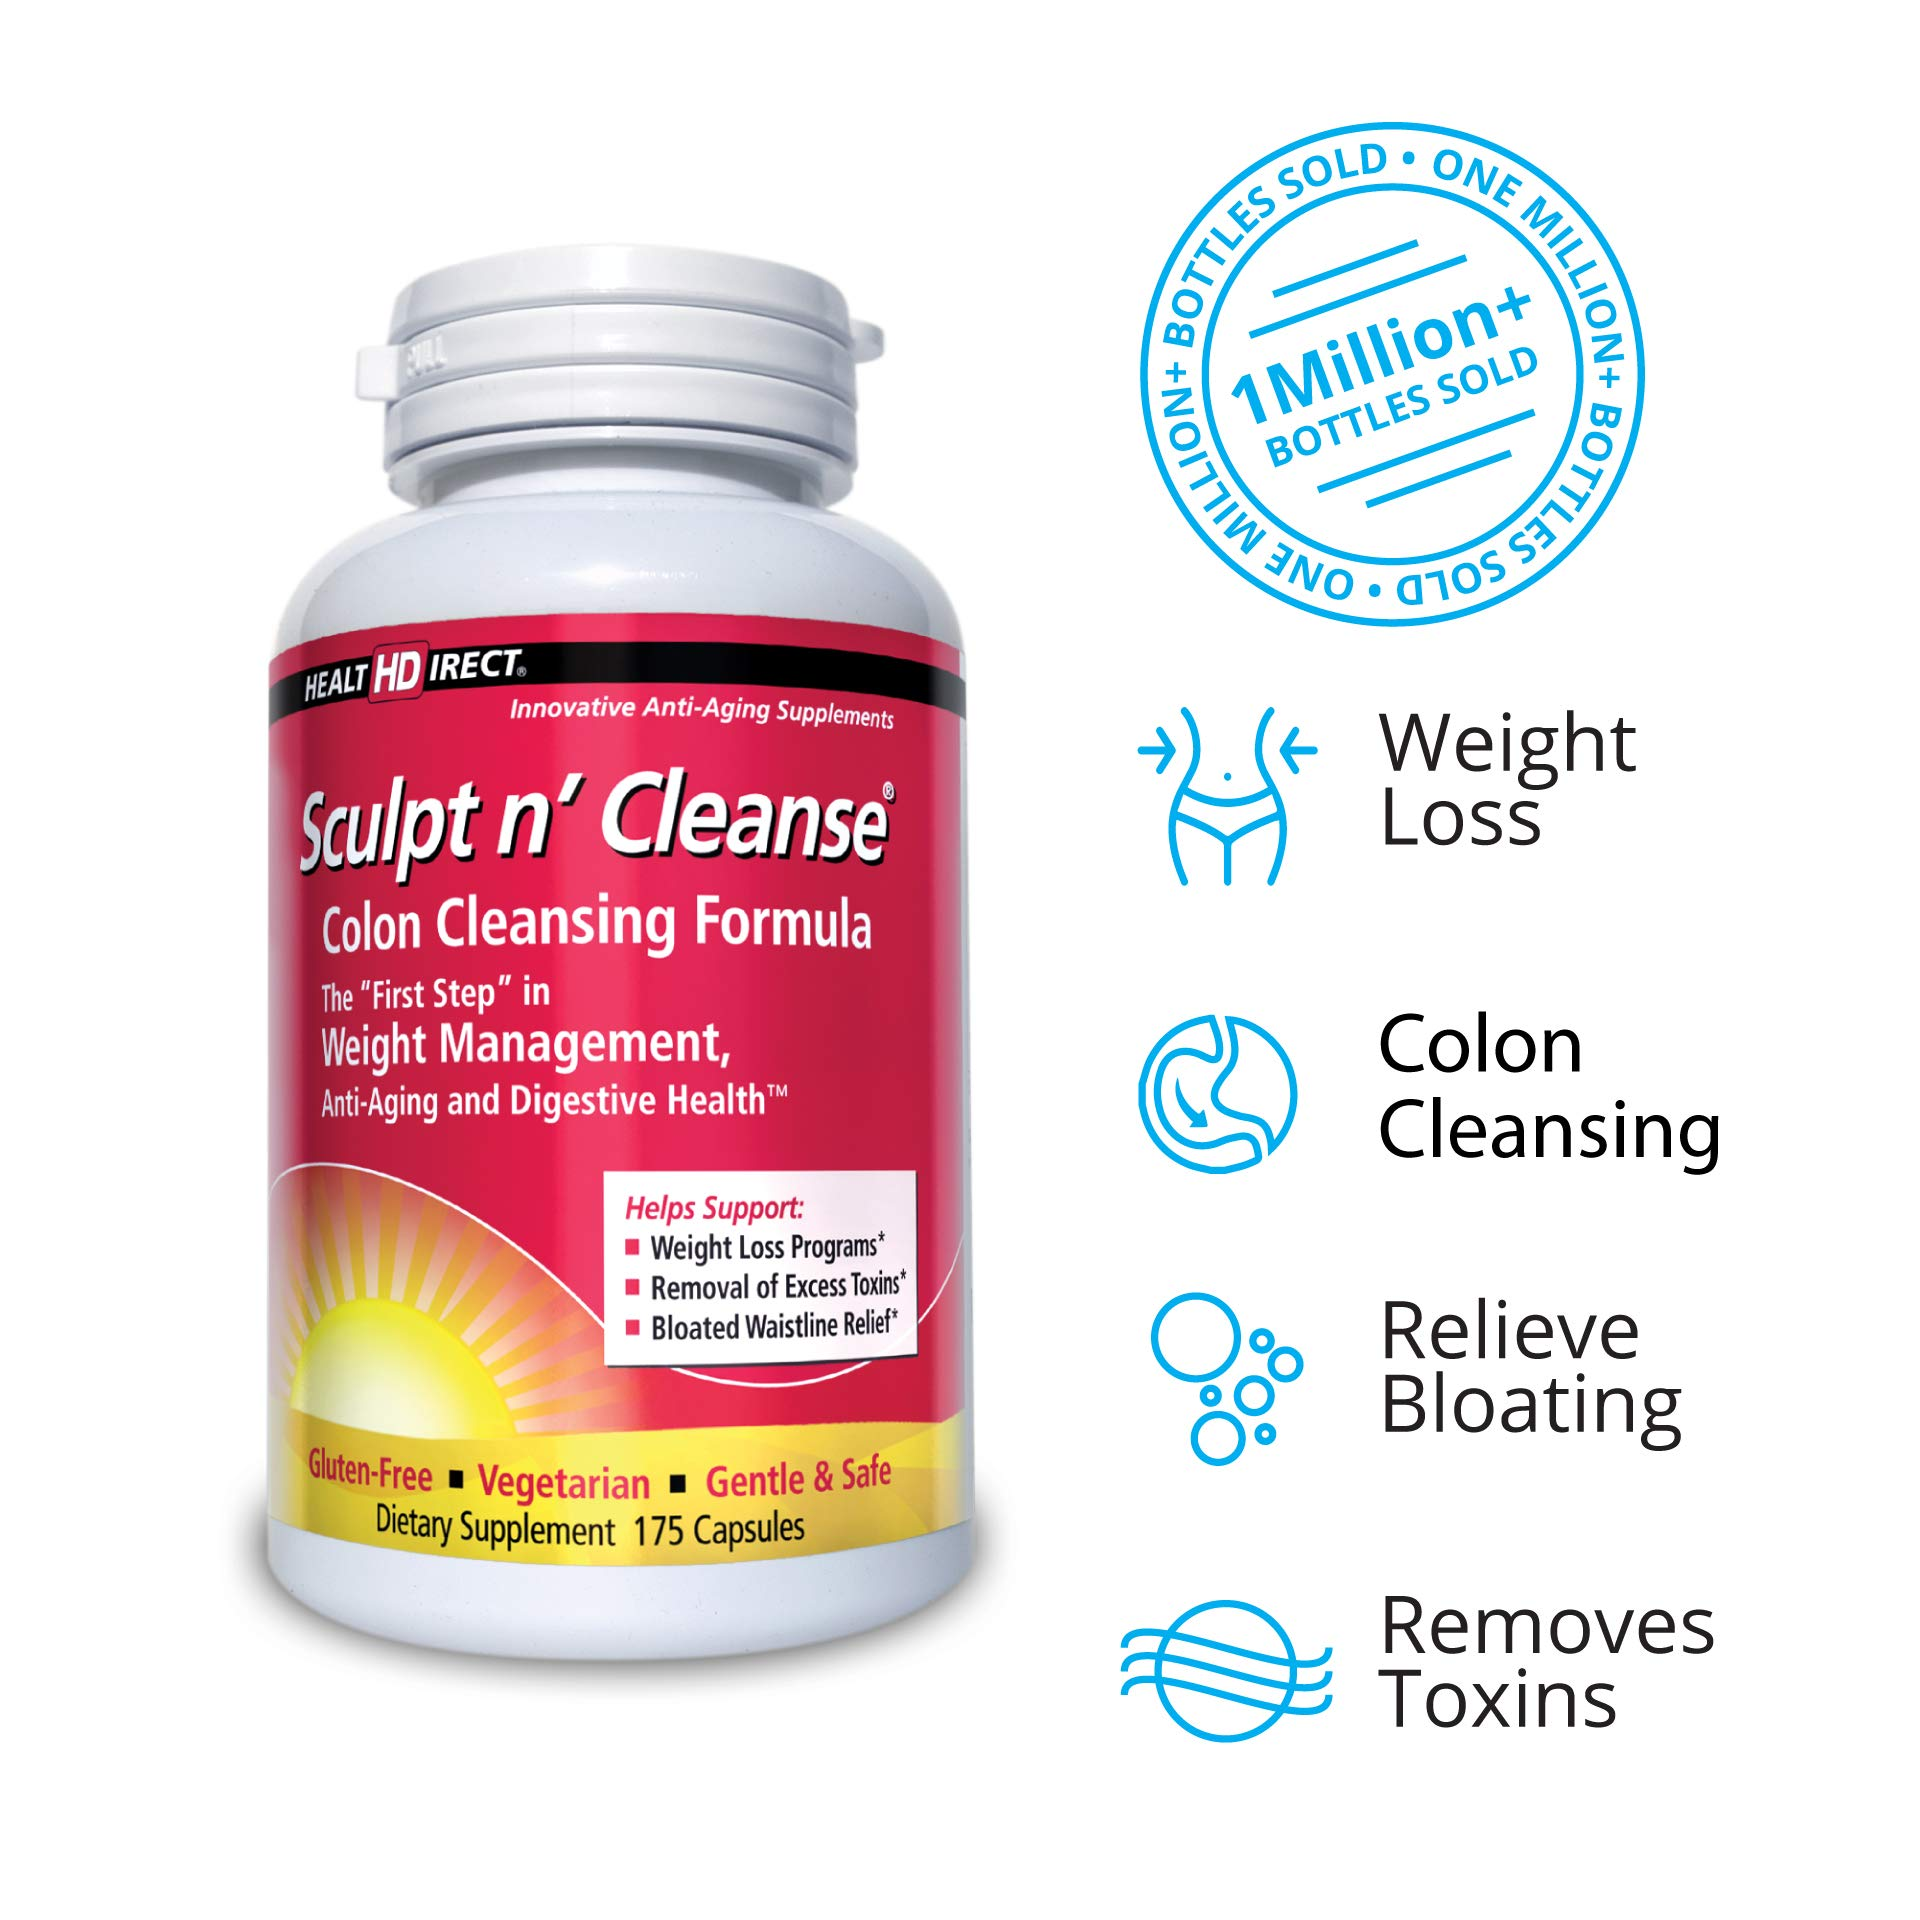 Sculpt n' Cleanse: Colon Cleanse, Detox, Weight Loss & Increased Energy Supplement | Vegan | Non GMO by Health Direct